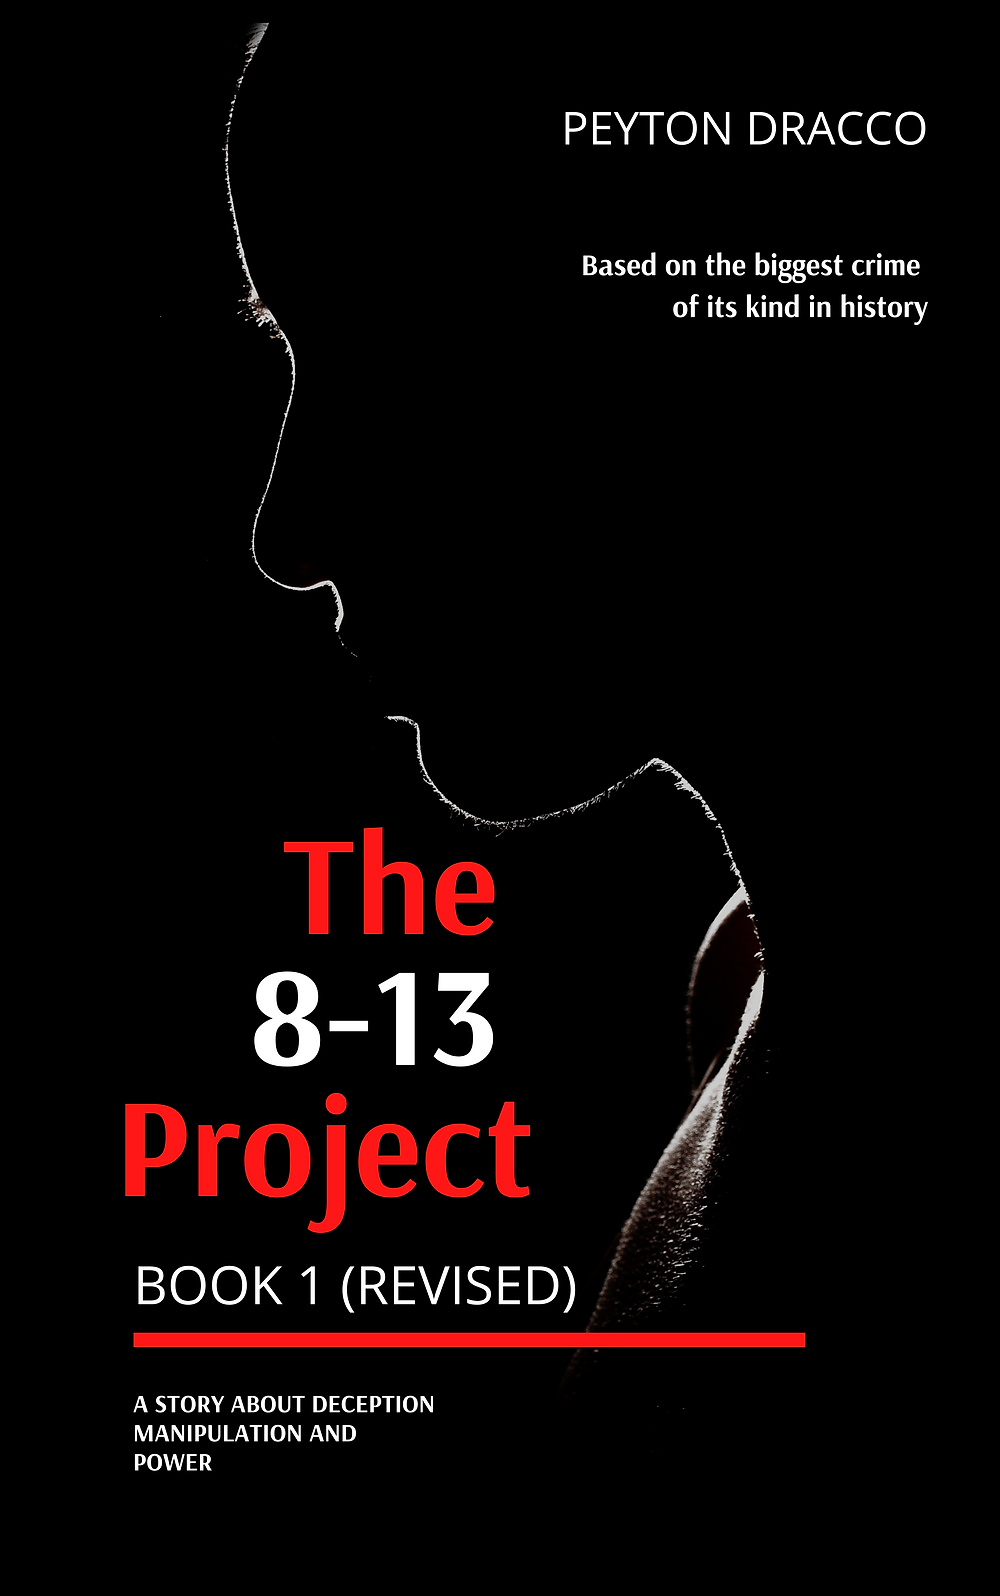 Cover of the 8-13 Project Book 1